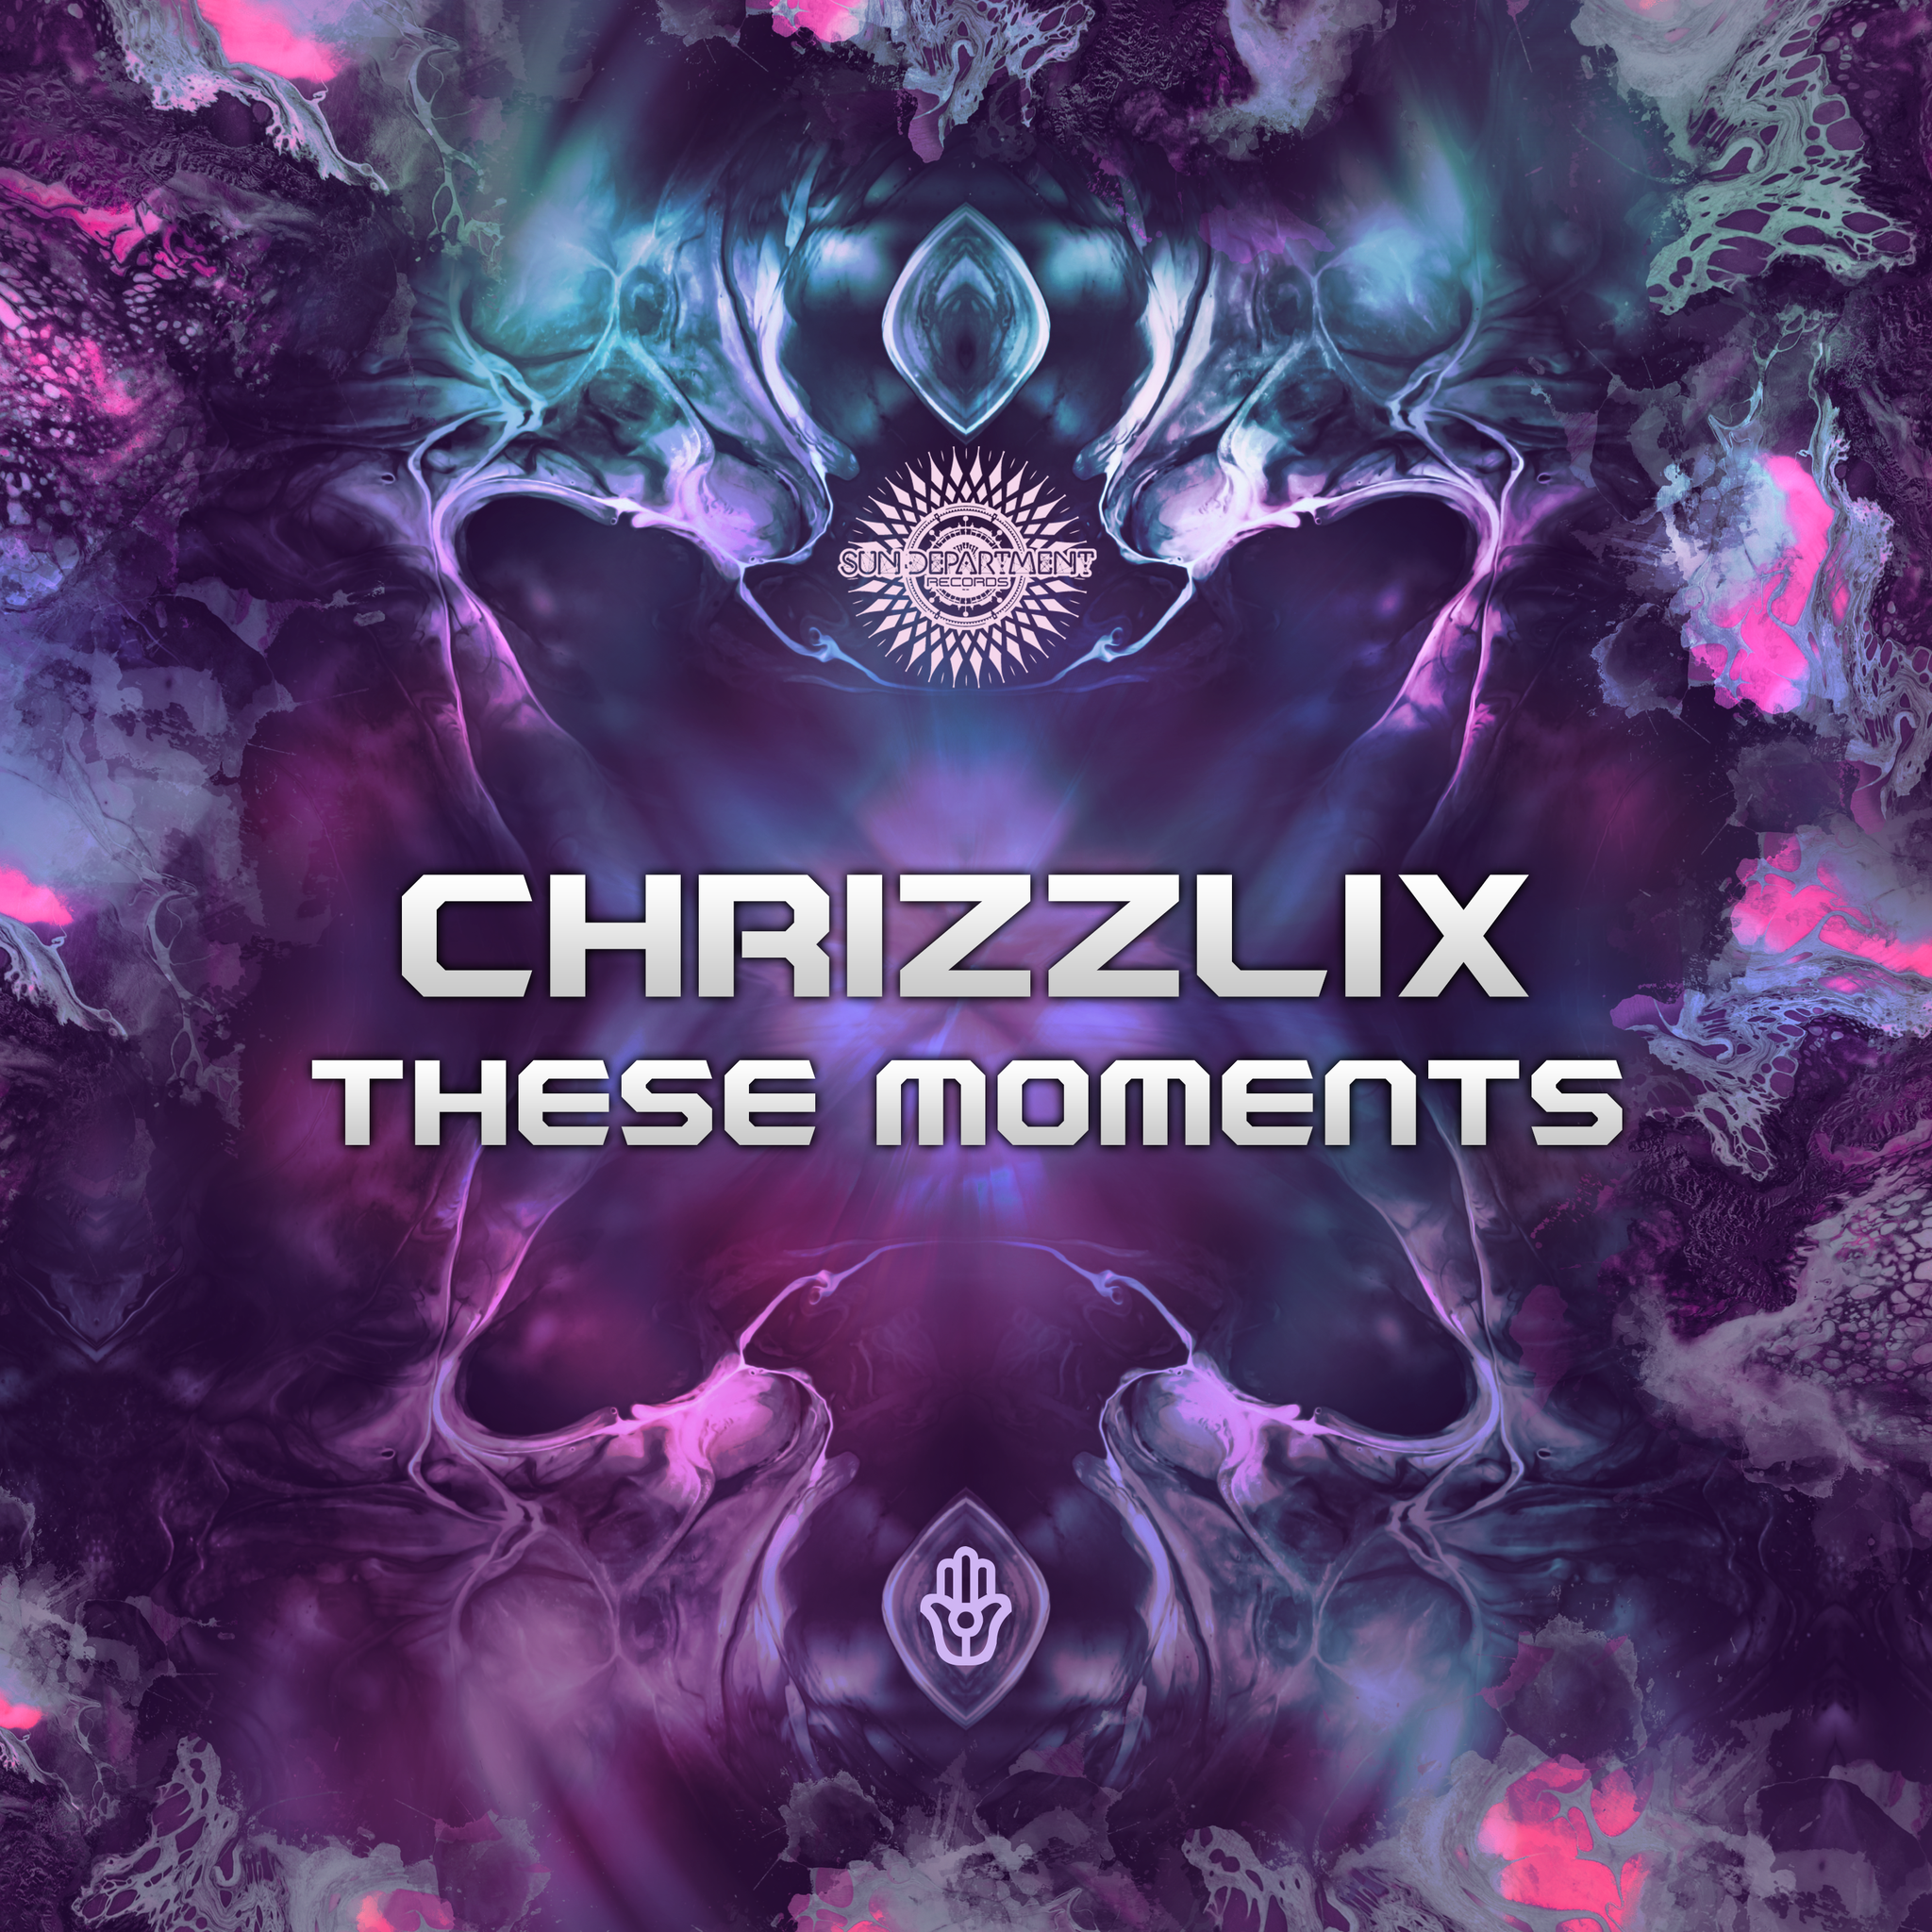 Chrizzlix - These Moments